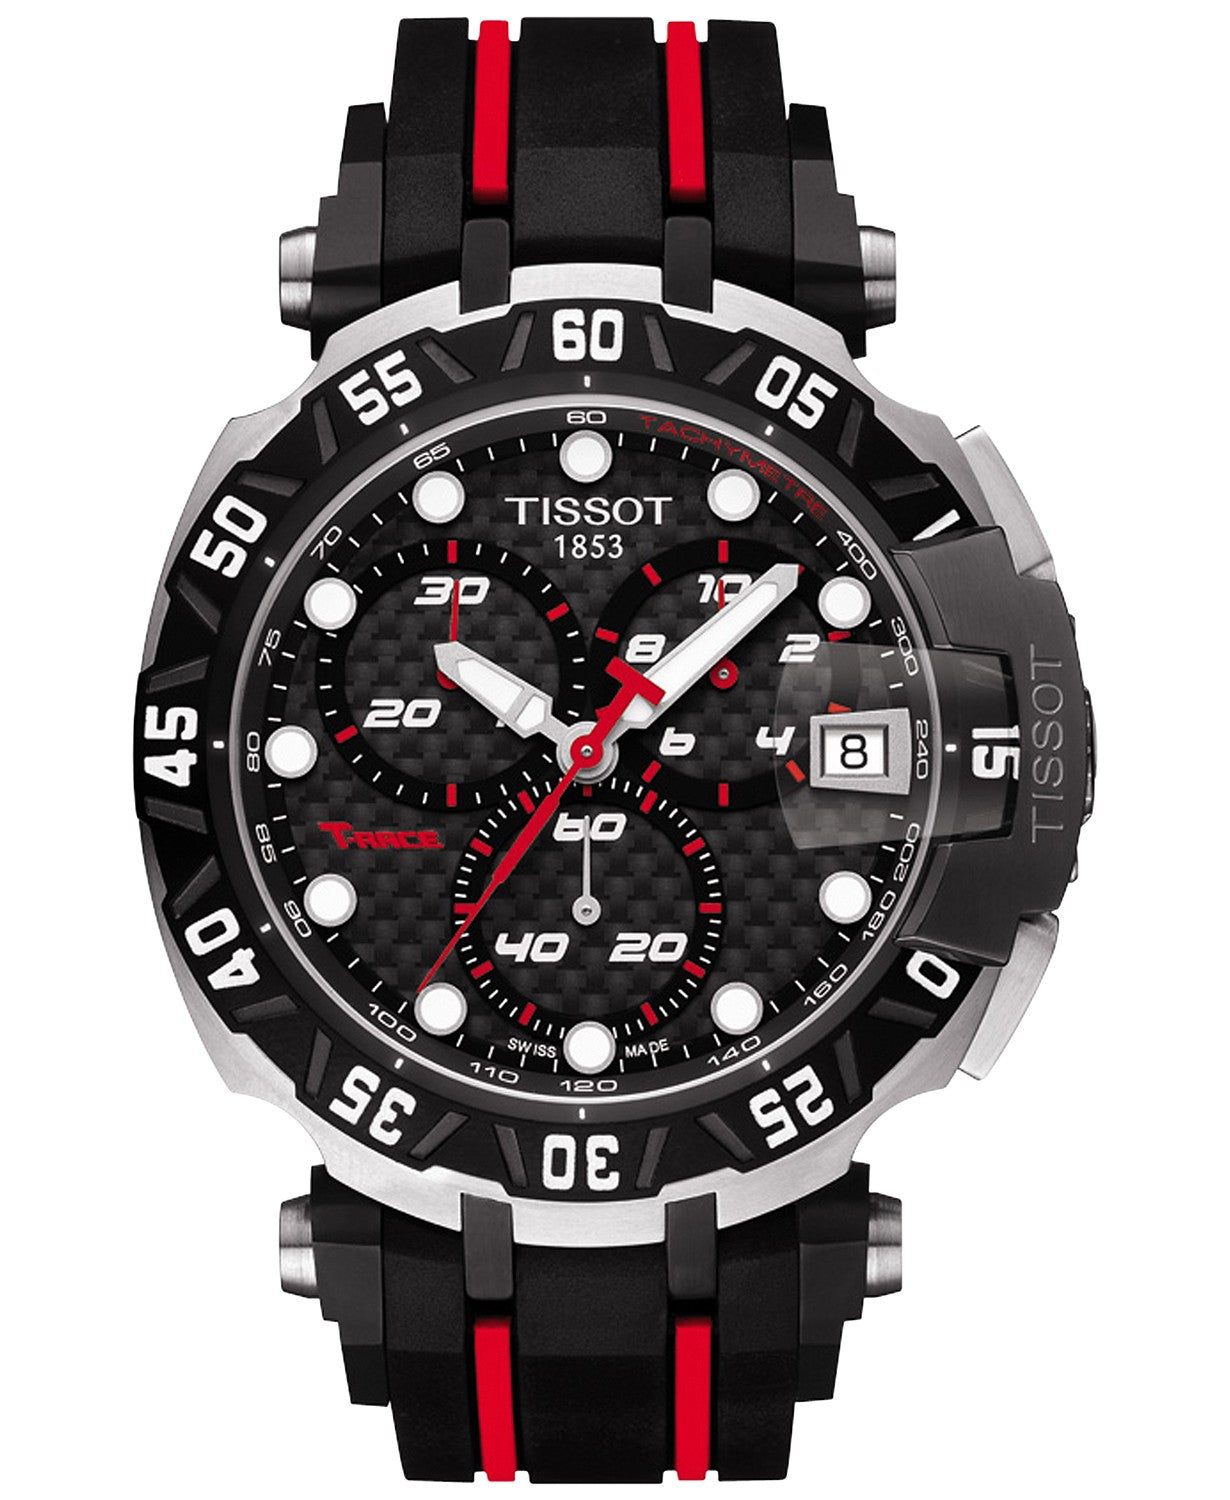 Tissot T-Race MotoGP Ltd Edition 2015 45mm Men's Watch T0924172720100